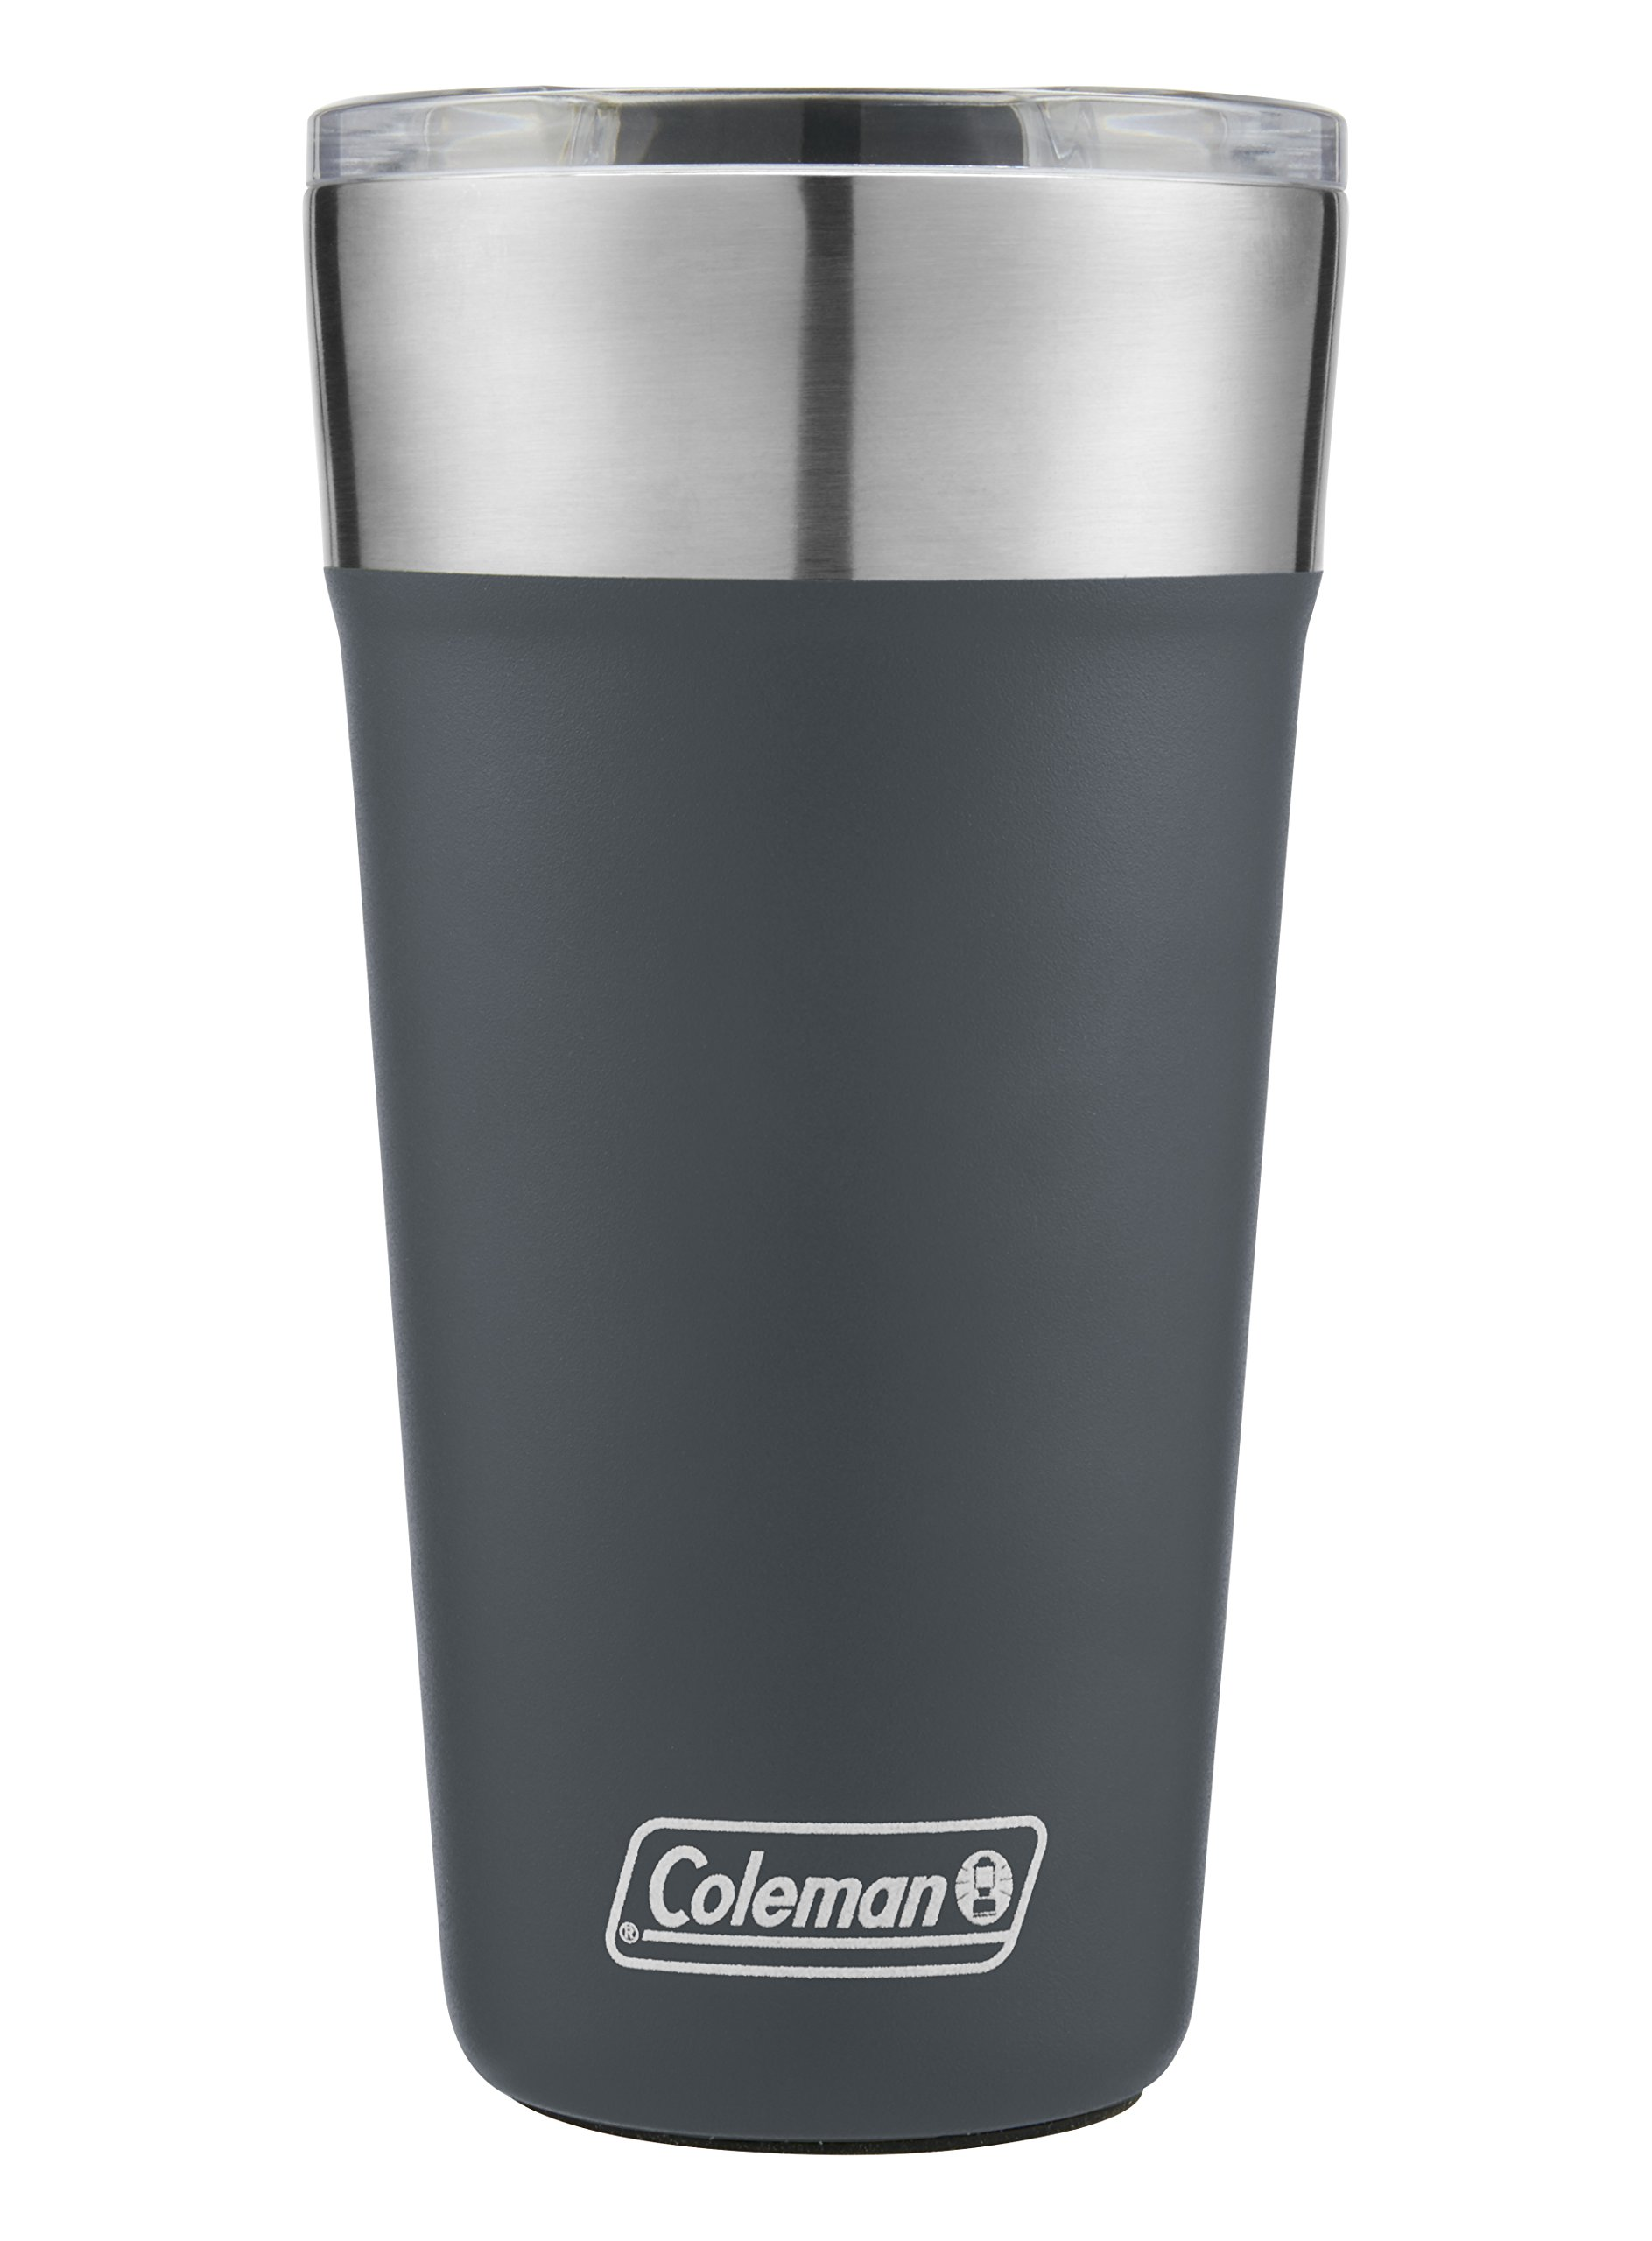 Coleman Brew Insulated Stainless Steel Tumbler, Slate, 20 oz.